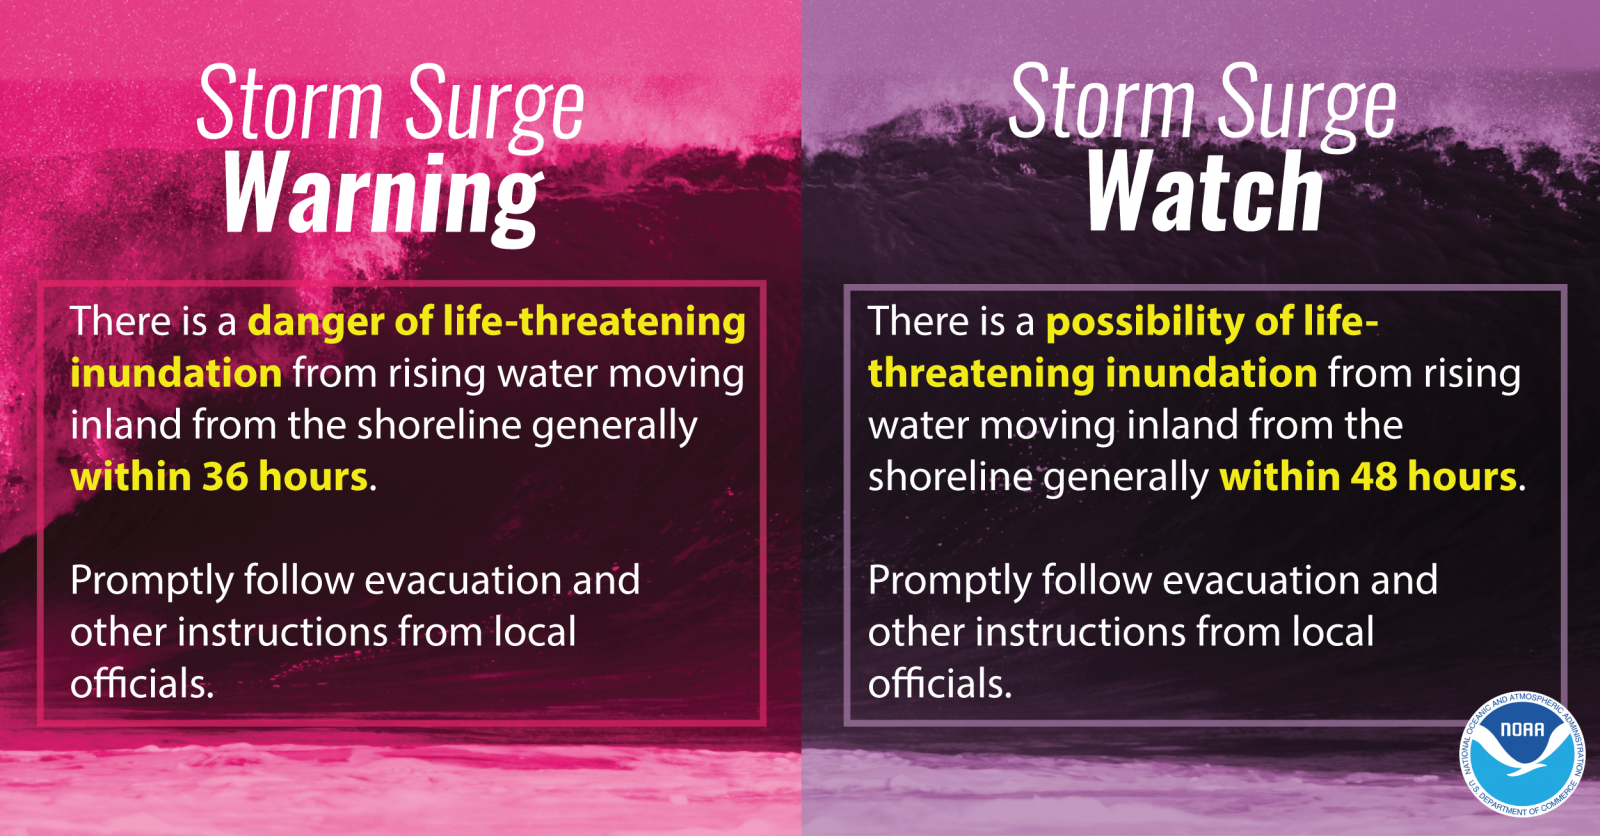 storm_surge_watch_vs_warning.png